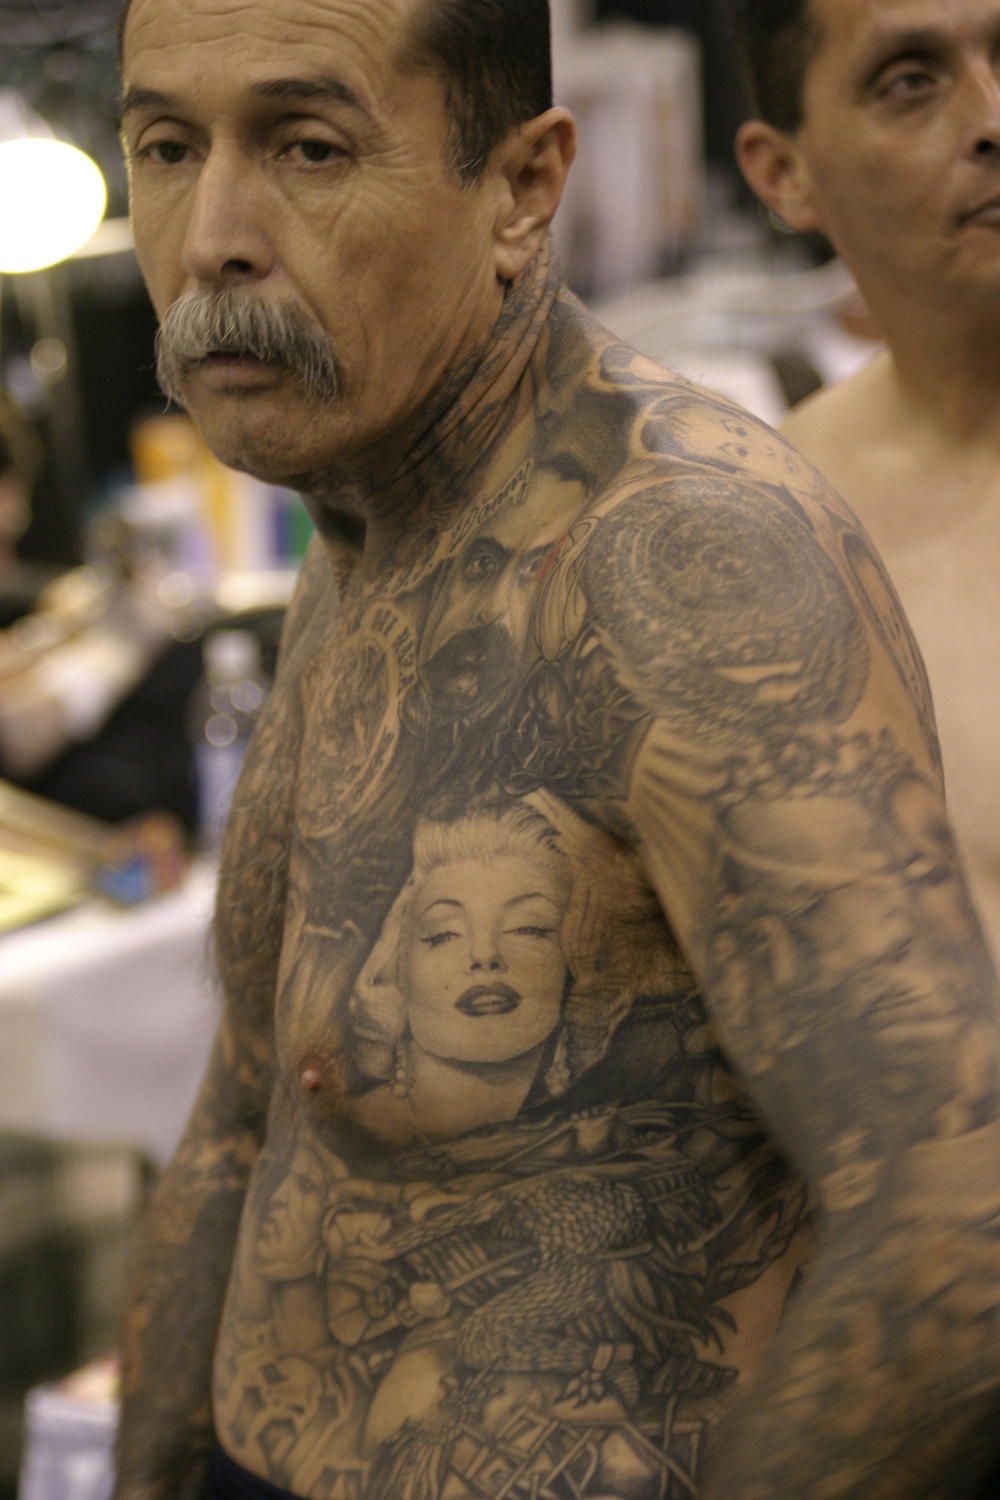 Tattoo_Expo039.JPG